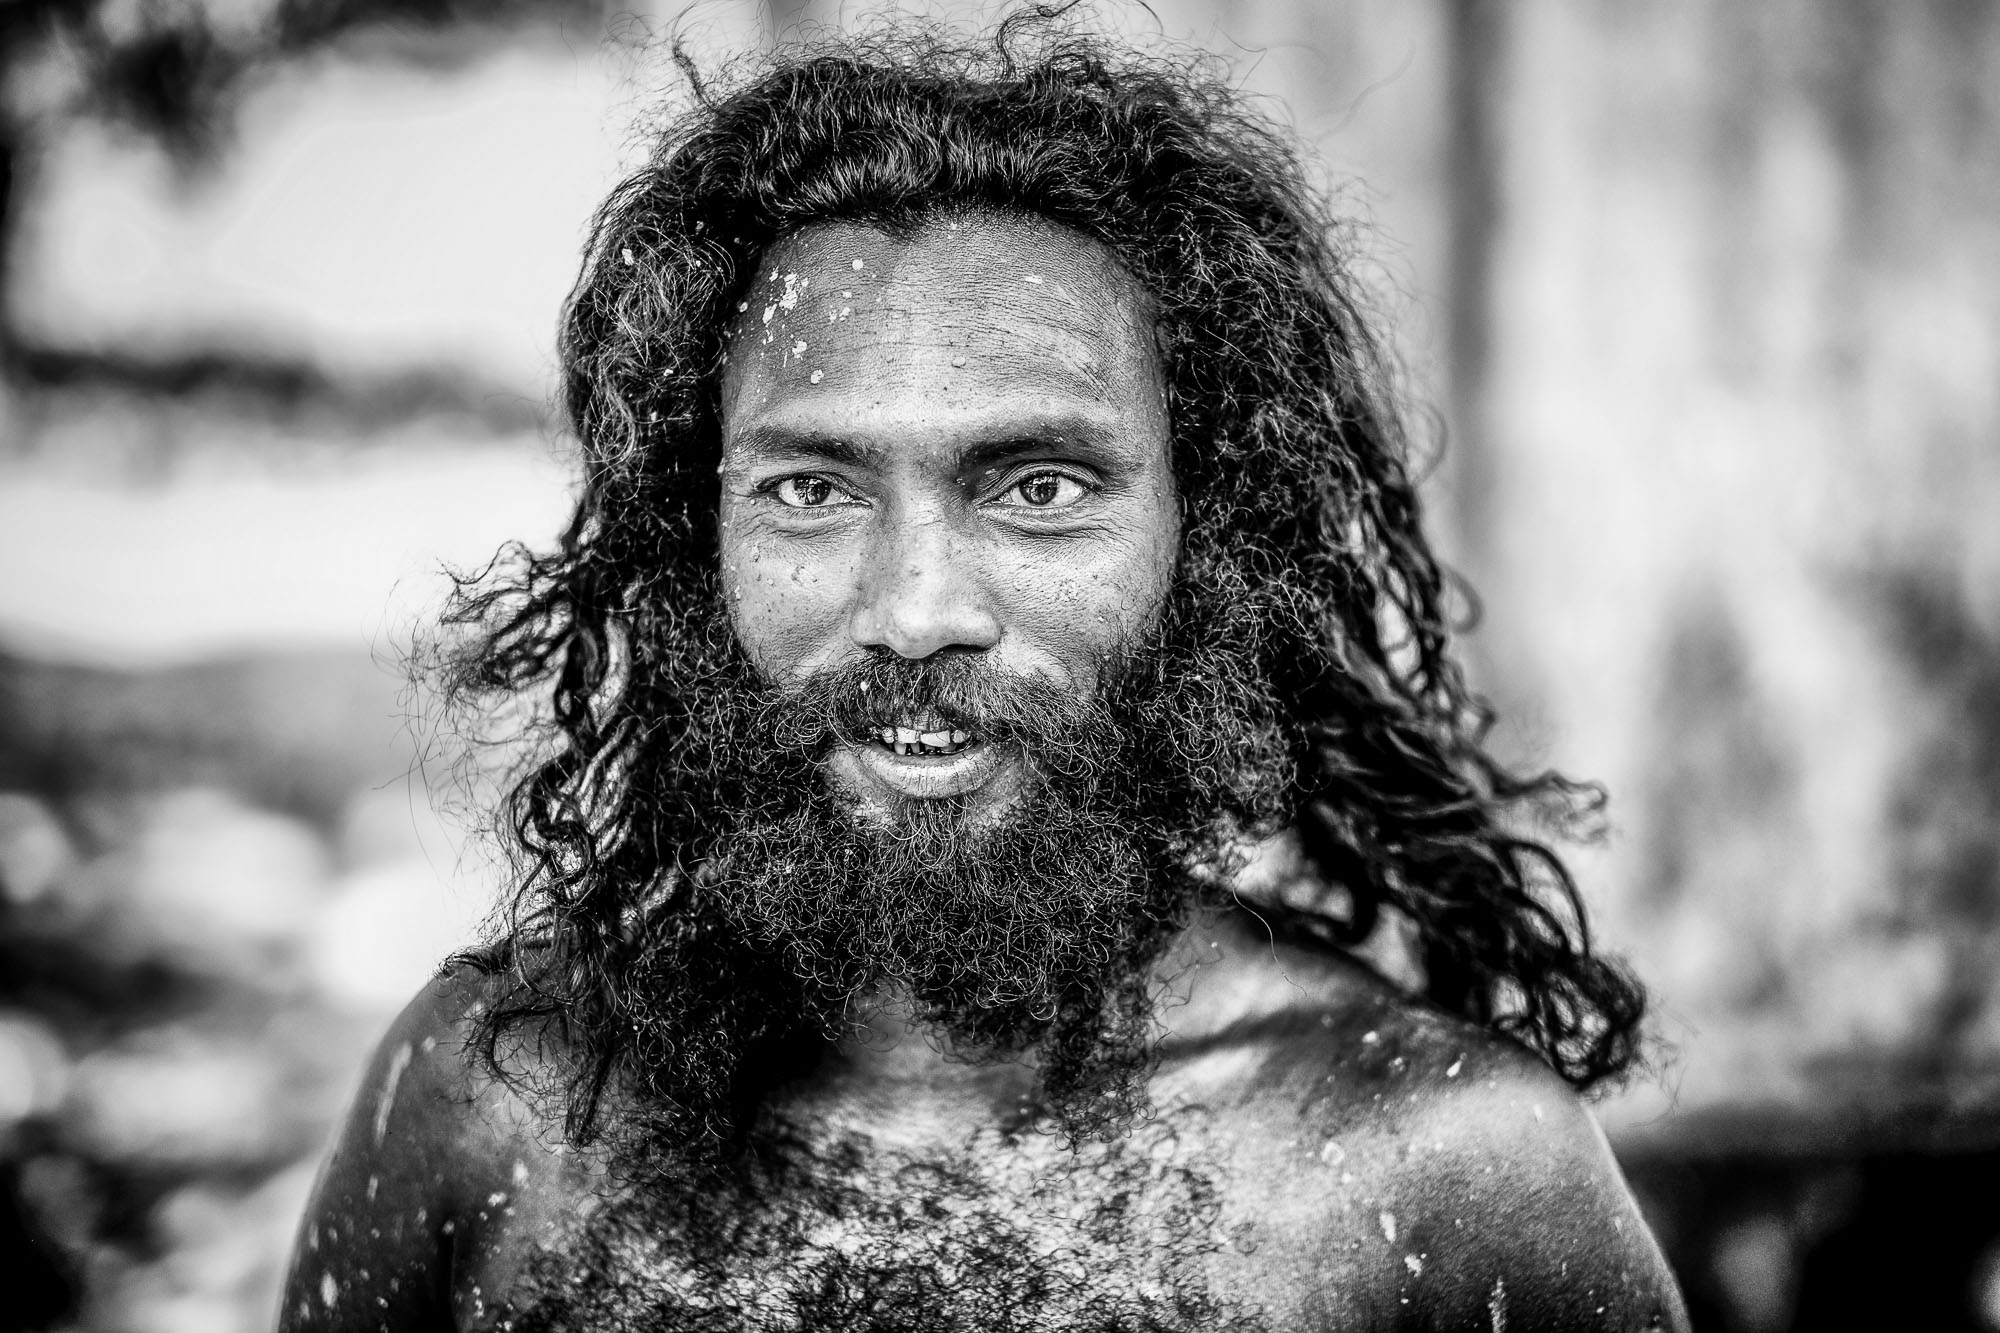 Vadda sri lanka indingenous group people photography - veddas portrait man smiling